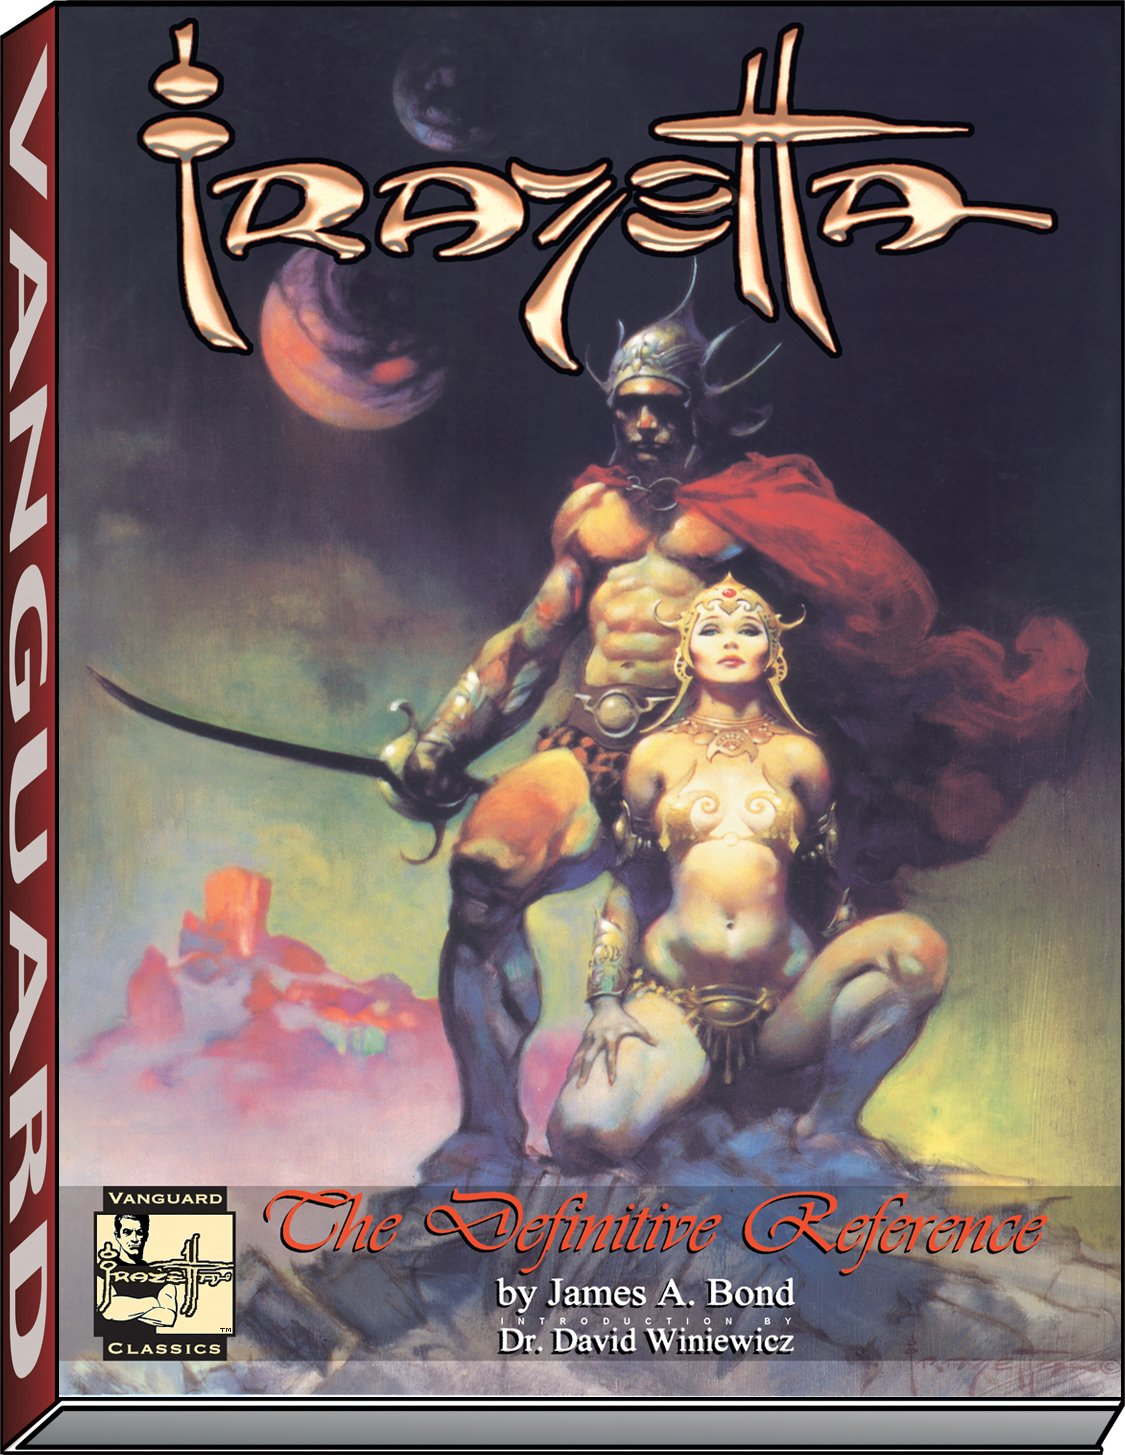 Frazetta: The Definitive Reference by Brand: VANGUARD PRODUCTIONS